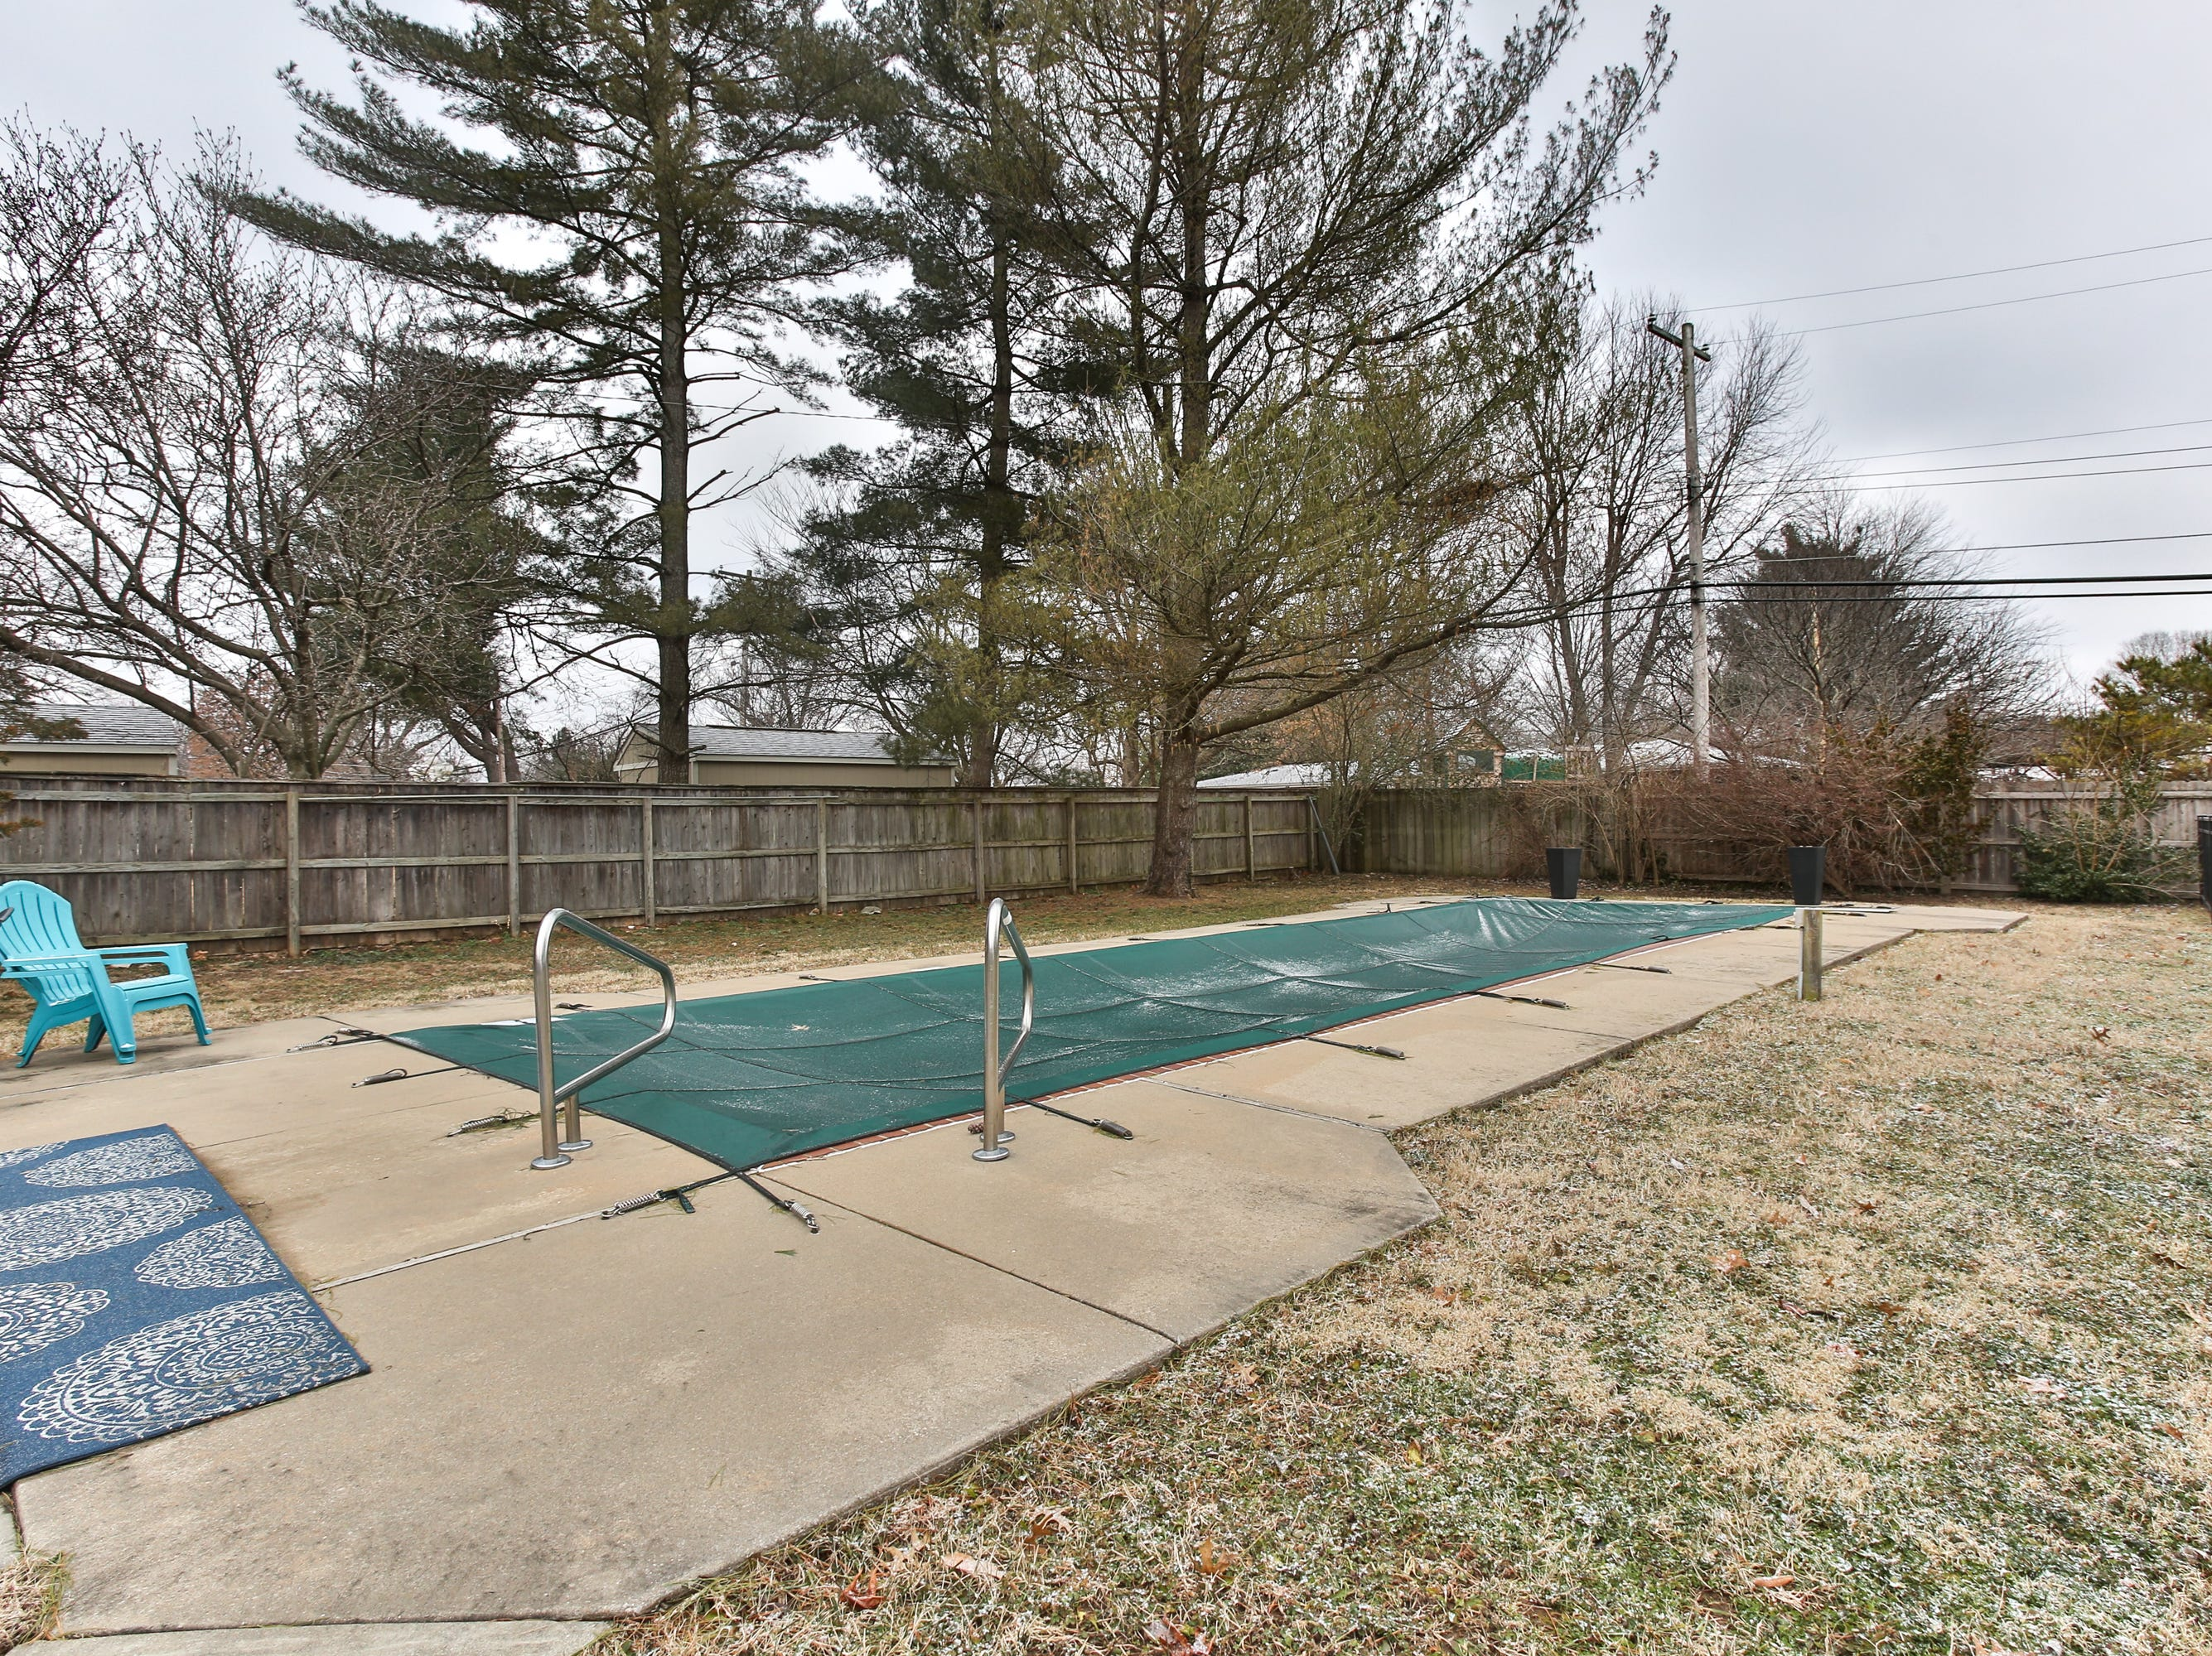 The in-ground pool, now closed for the season, is separated from the larger play area of the backyard by an attractive, yet effective, iron fence.